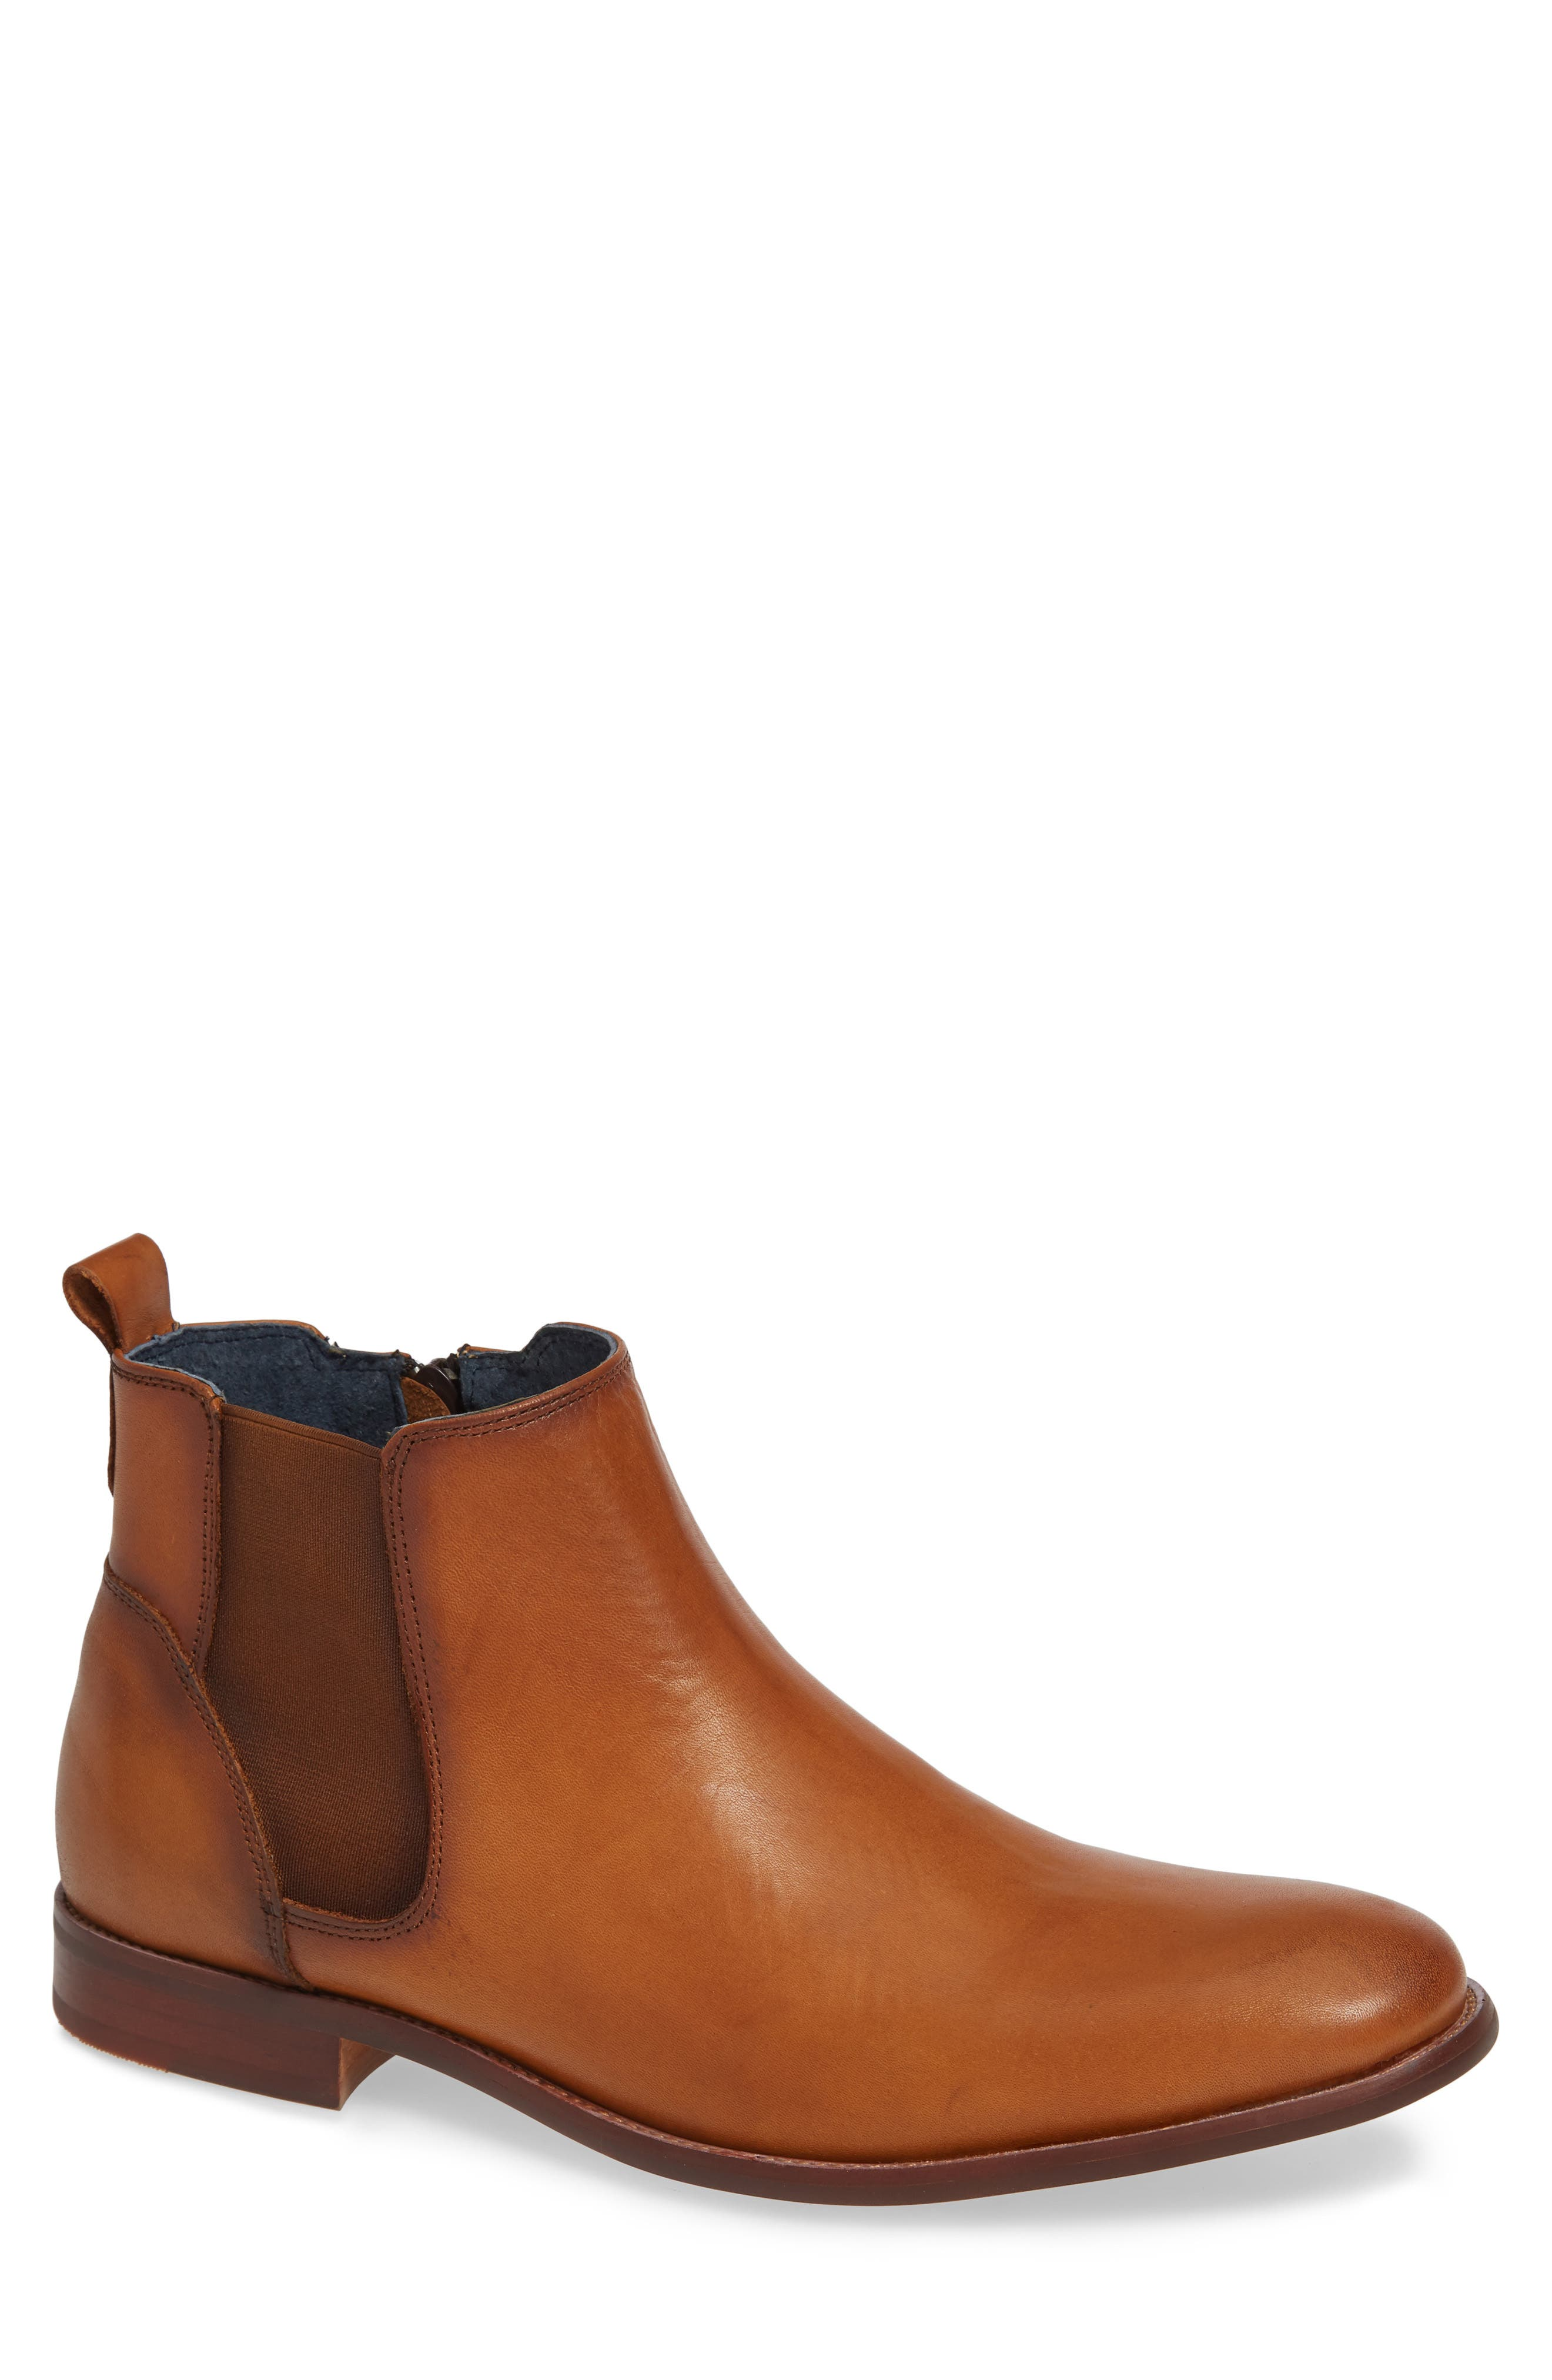 JUMP Collin Plain Toe Chelsea Boot, Main, color, TAN